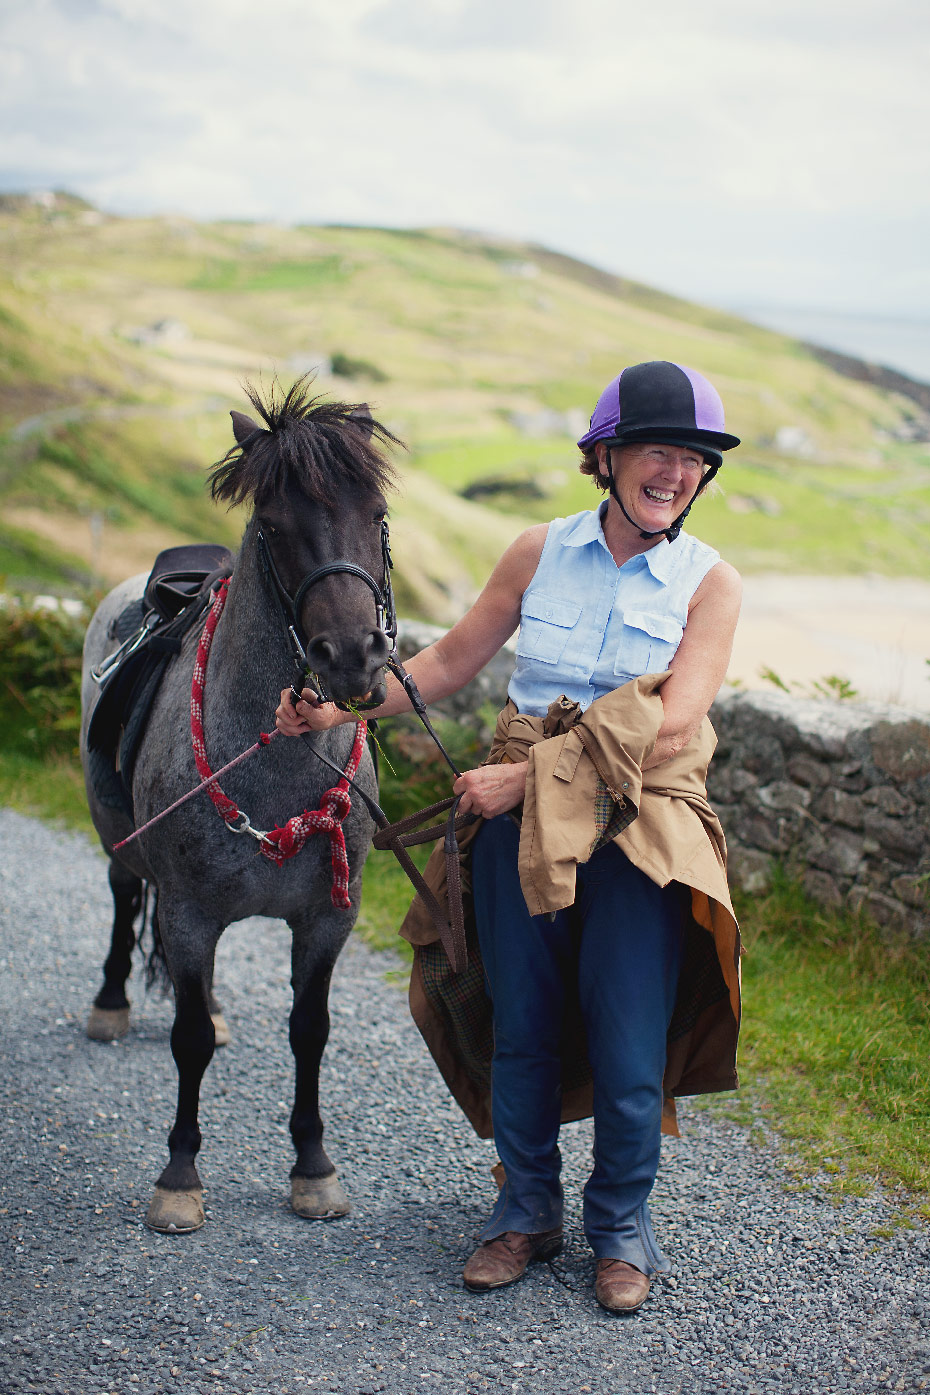 Stacey Van Berkel Photography I Woman with pony I Donegal, Ireland